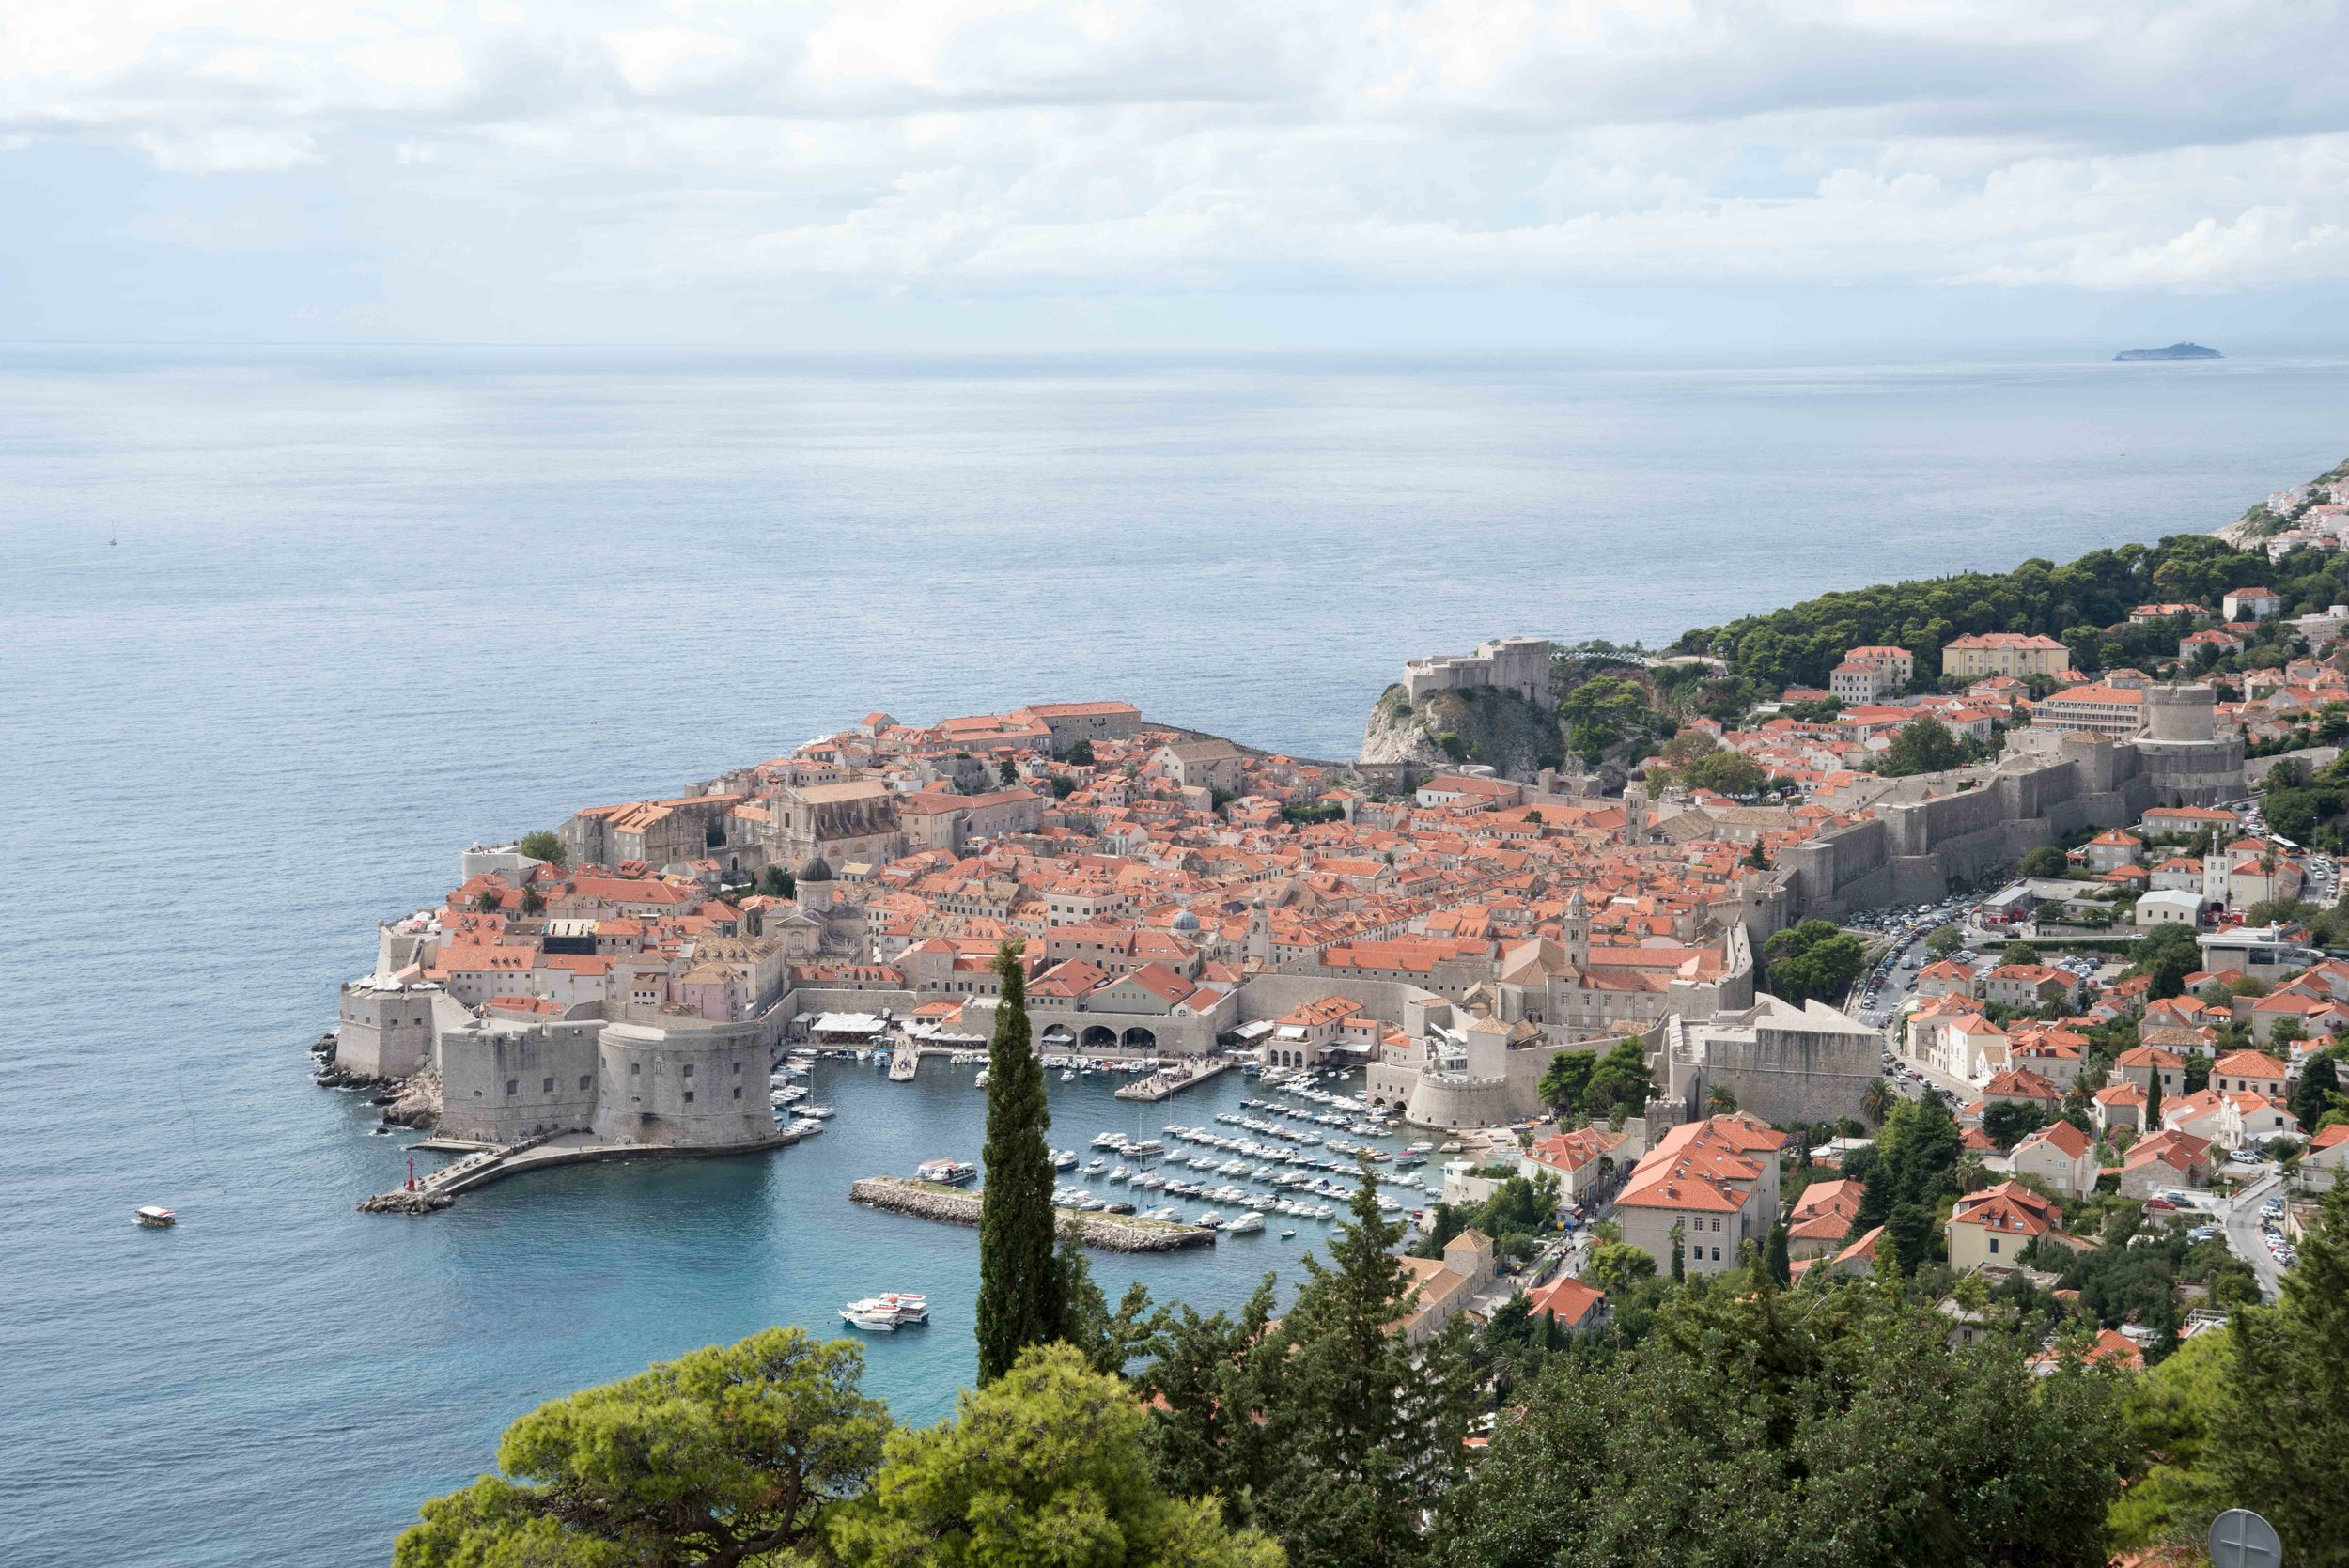 View of Dubrovnik old town, Croatia